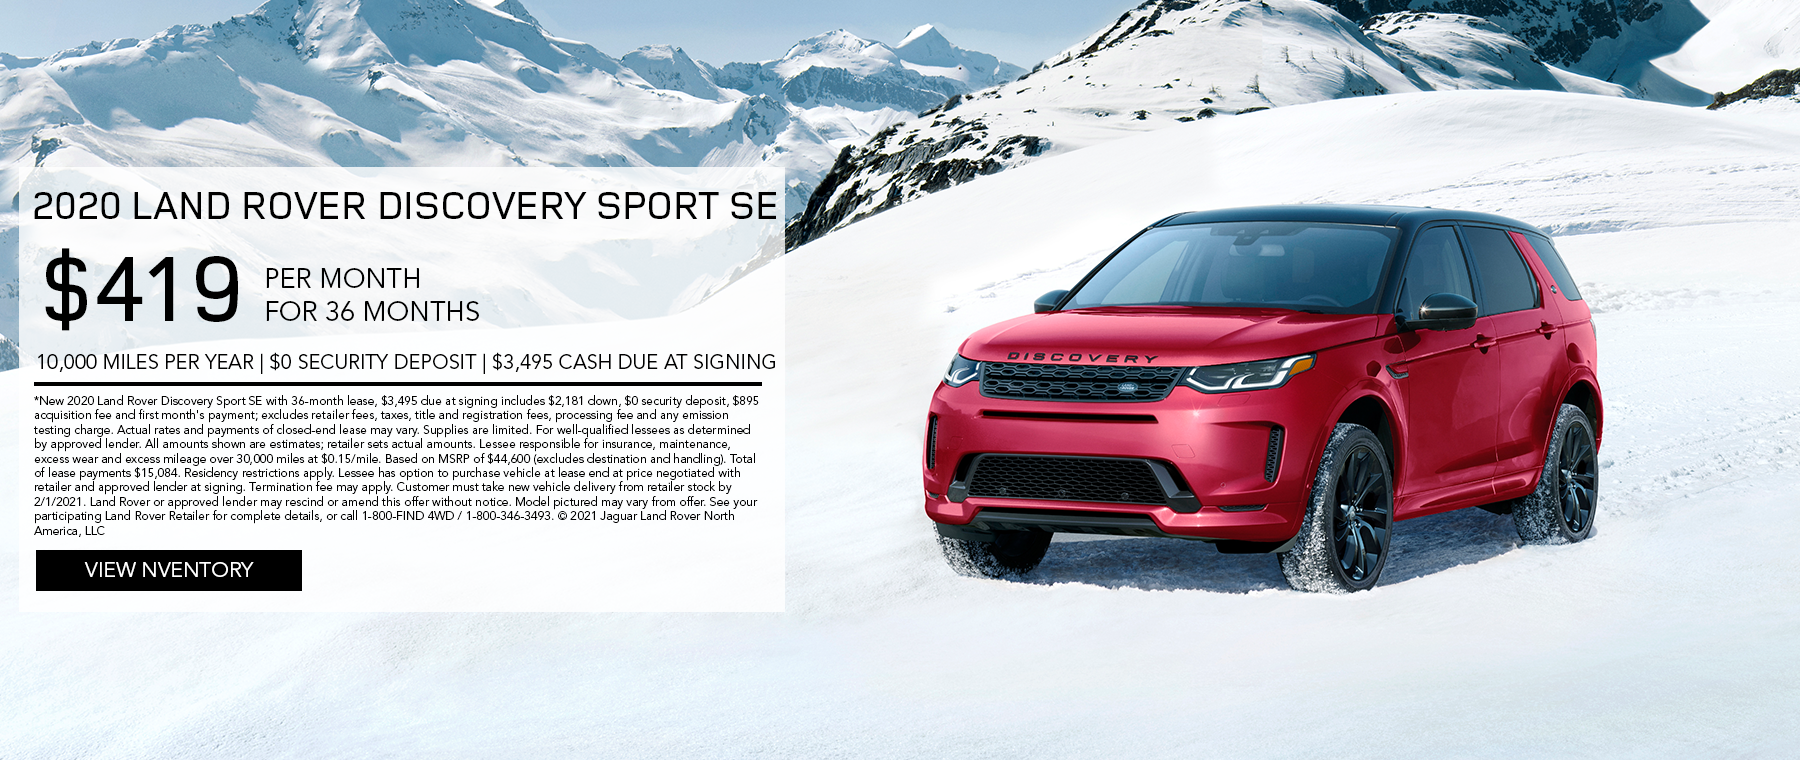 2020 LAND ROVER DISCOVERY SPORT SE. $419 PER MONTH. 36 MONTH LEASE TERM. $3,495 CASH DUE AT SIGNING. $0 SECURITY DEPOSIT. 10,000 MILES PER YEAR. EXCLUDES RETAILER FEES, TAXES, TITLE AND REGISTRATION FEES, PROCESSING FEE AND ANY EMISSION TESTING CHARGE. ENDS 2/1/2021.